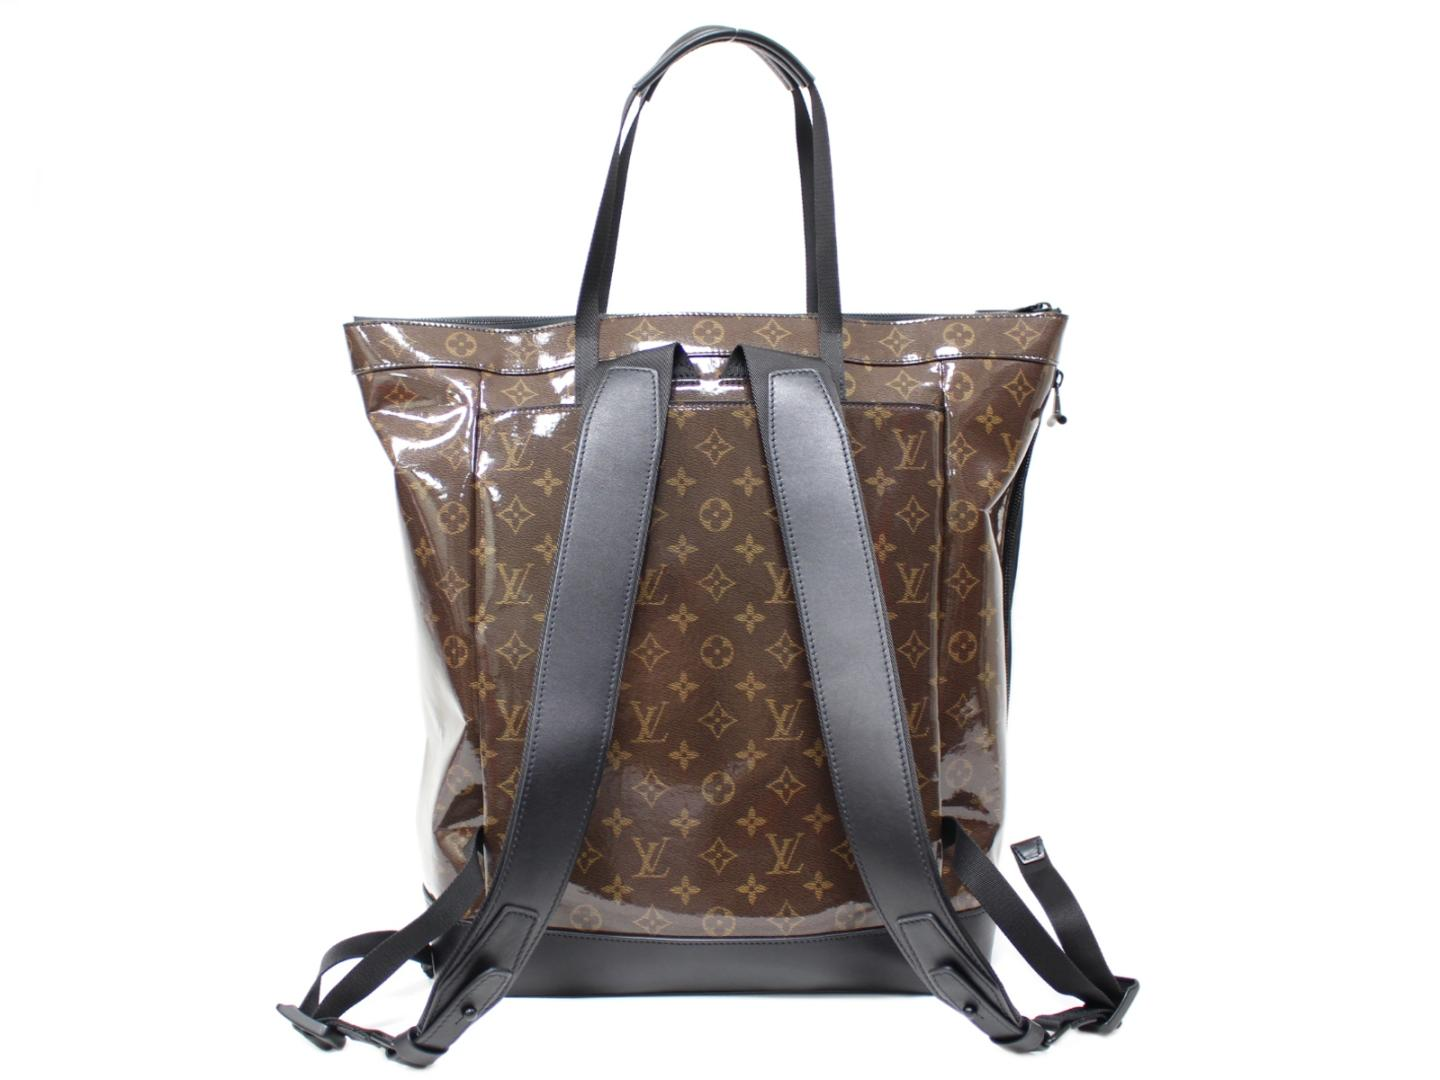 3678de43878e Authentic LOUIS VUITTON Zippered Tote Tote Bag backpack M43890 Monogram  Glaze